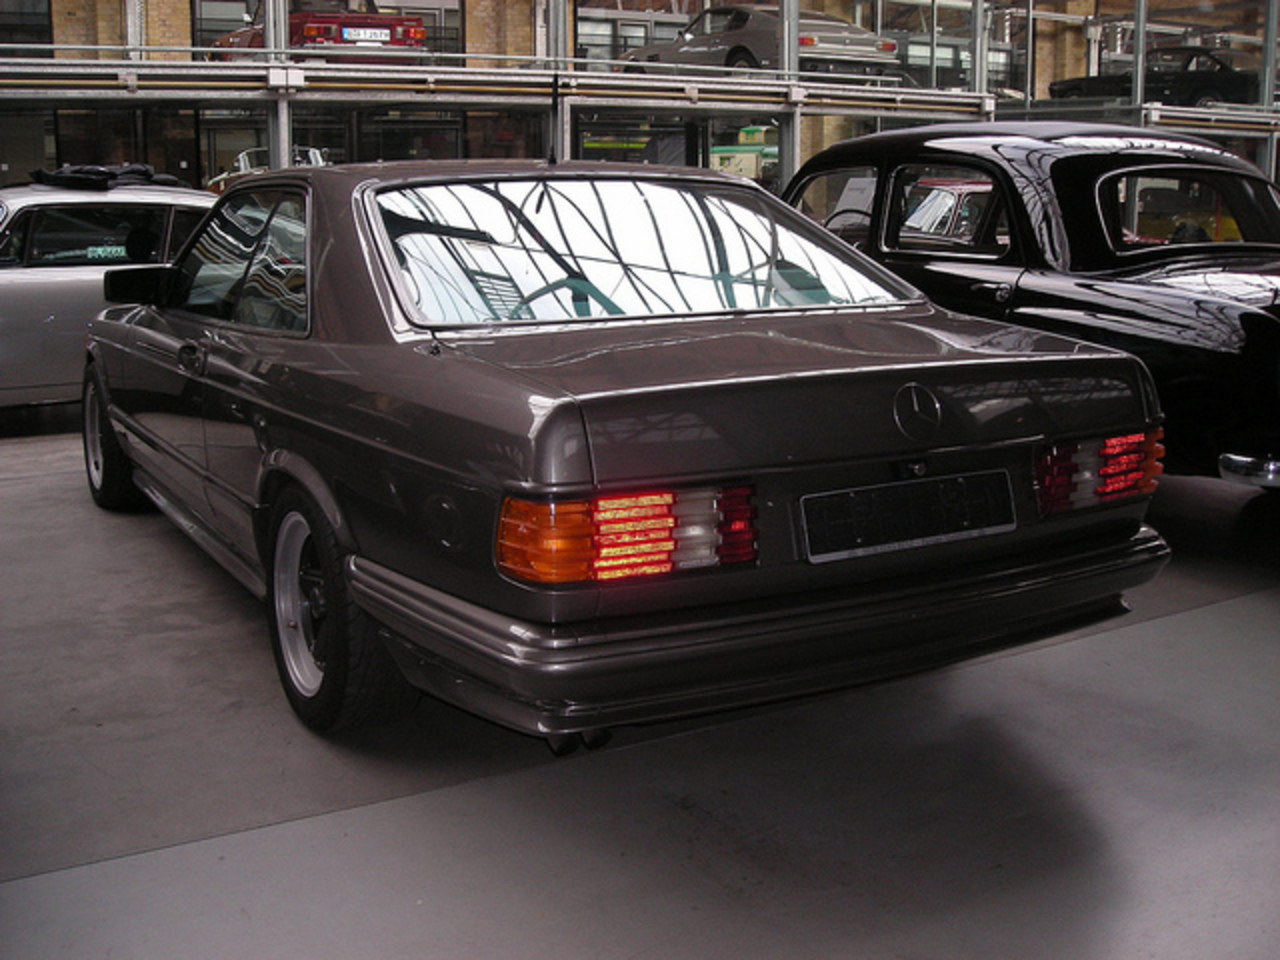 Mercedes-Benz 500 SEC AMG - 1982 Meilenwerk Berlin | Flickr ...